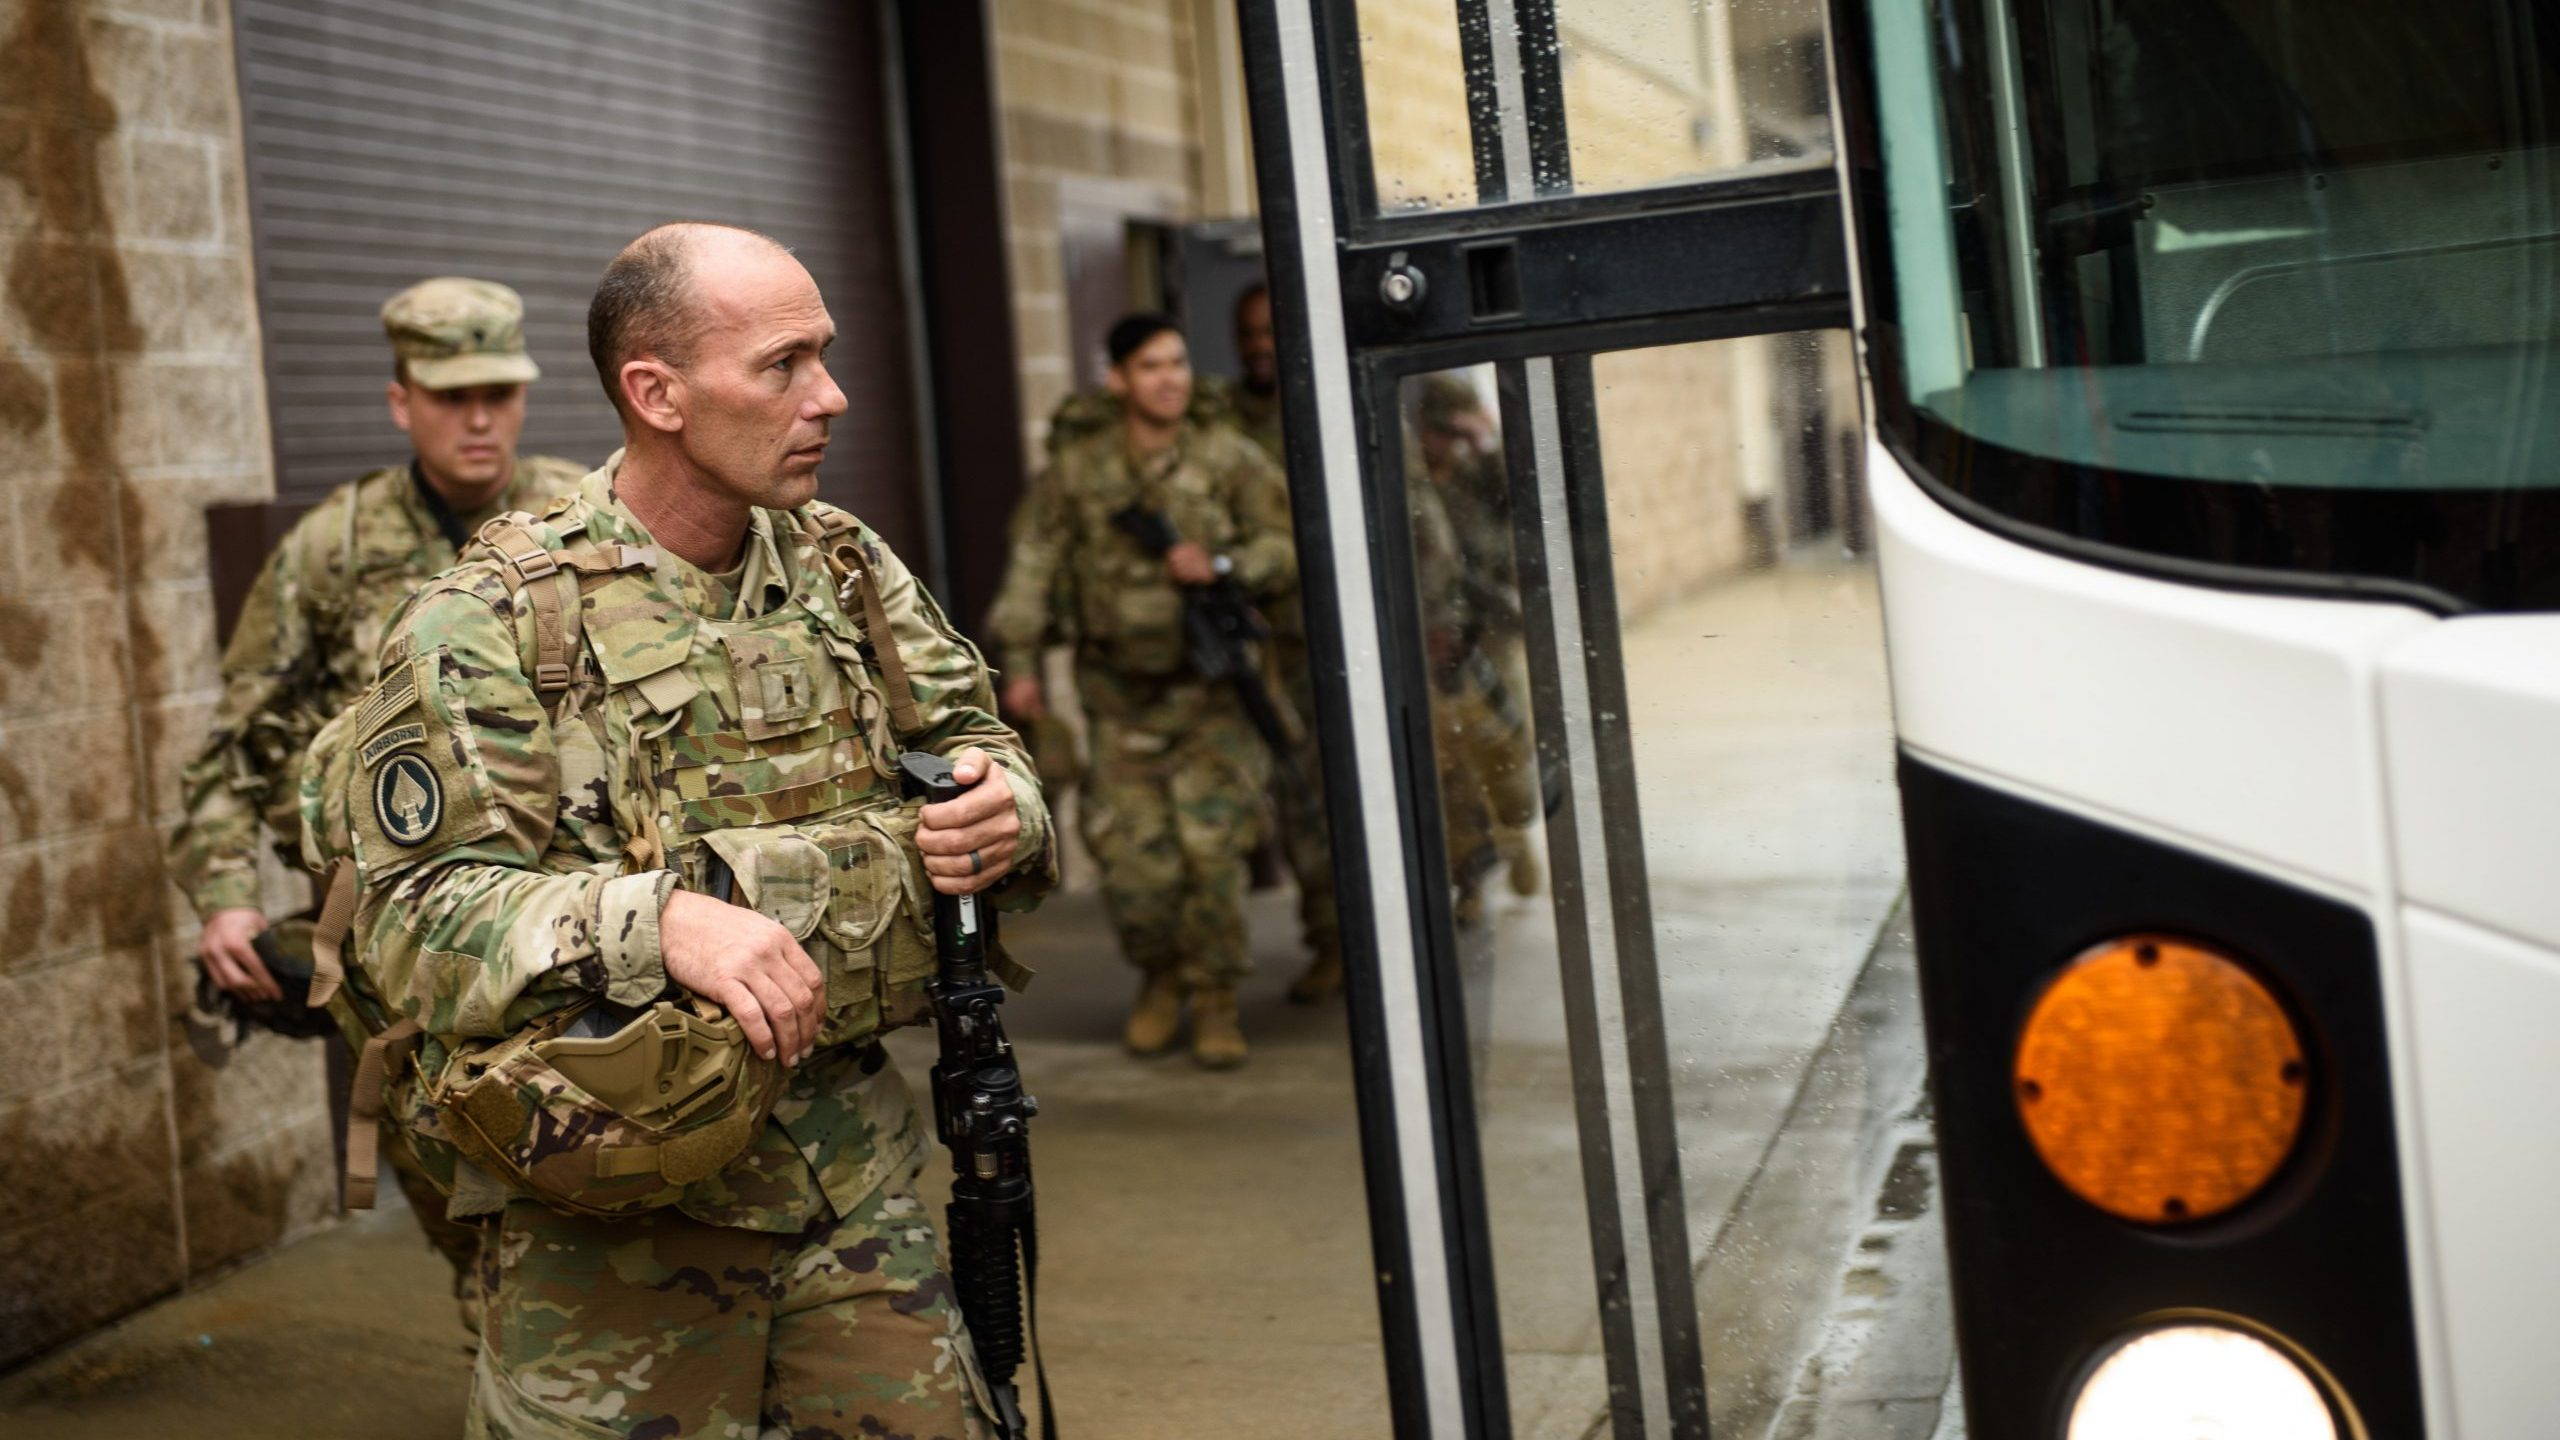 U.S. troops from the Army's 82nd Airborne Division board a bus as they head out for a deployment to the Middle East on Jan. 4, 2020 in Fort Bragg, North Carolina. (Credit: Andrew Craft/Getty Images)